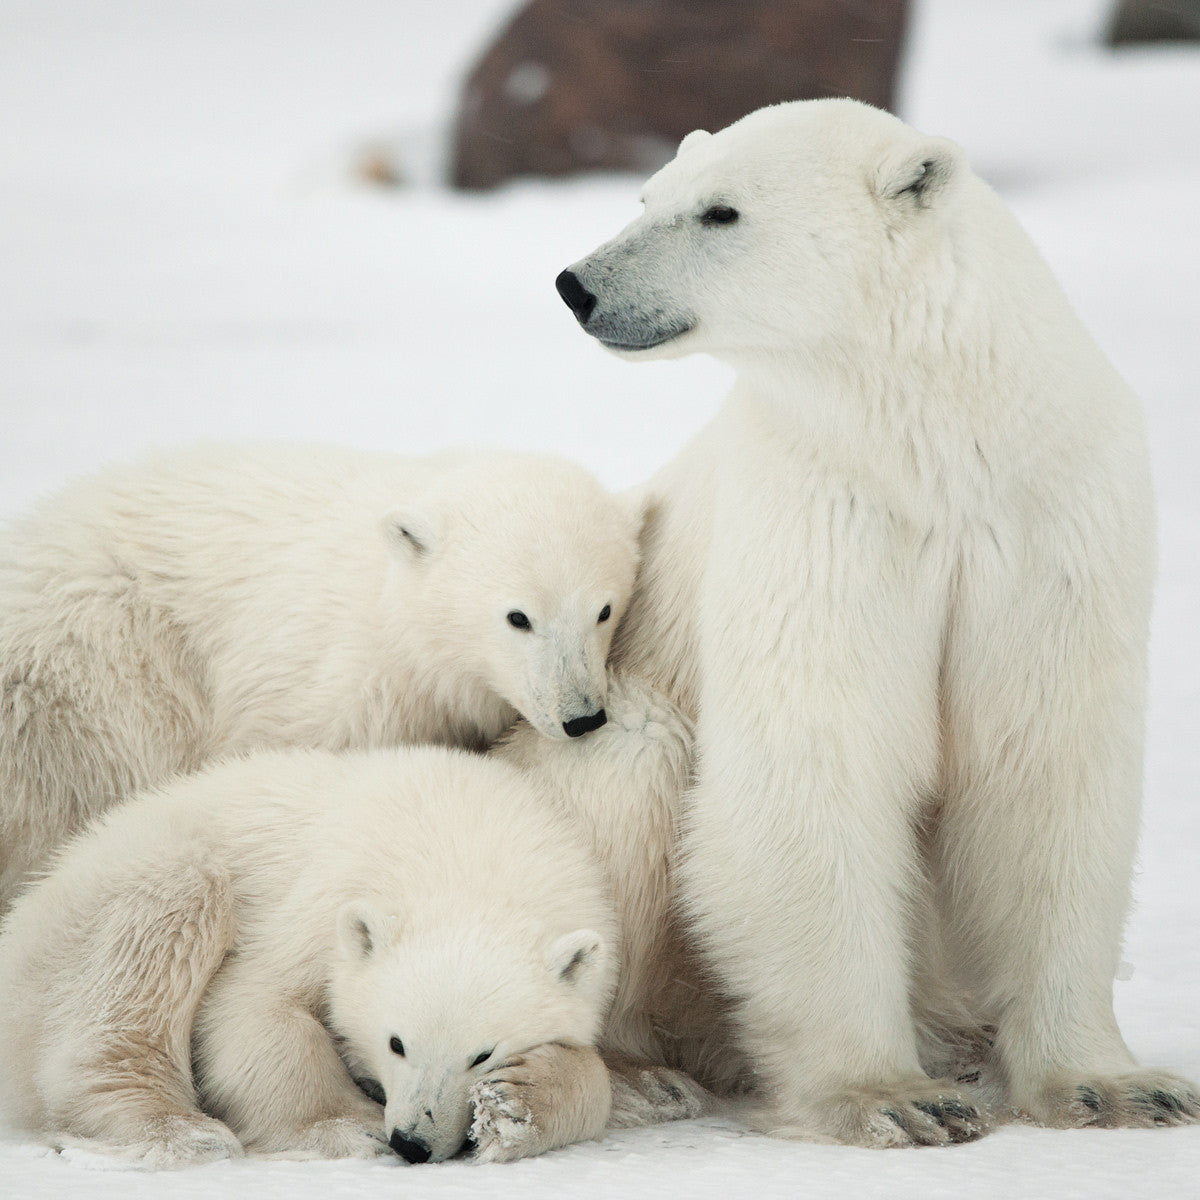 Famille d'ours polaires